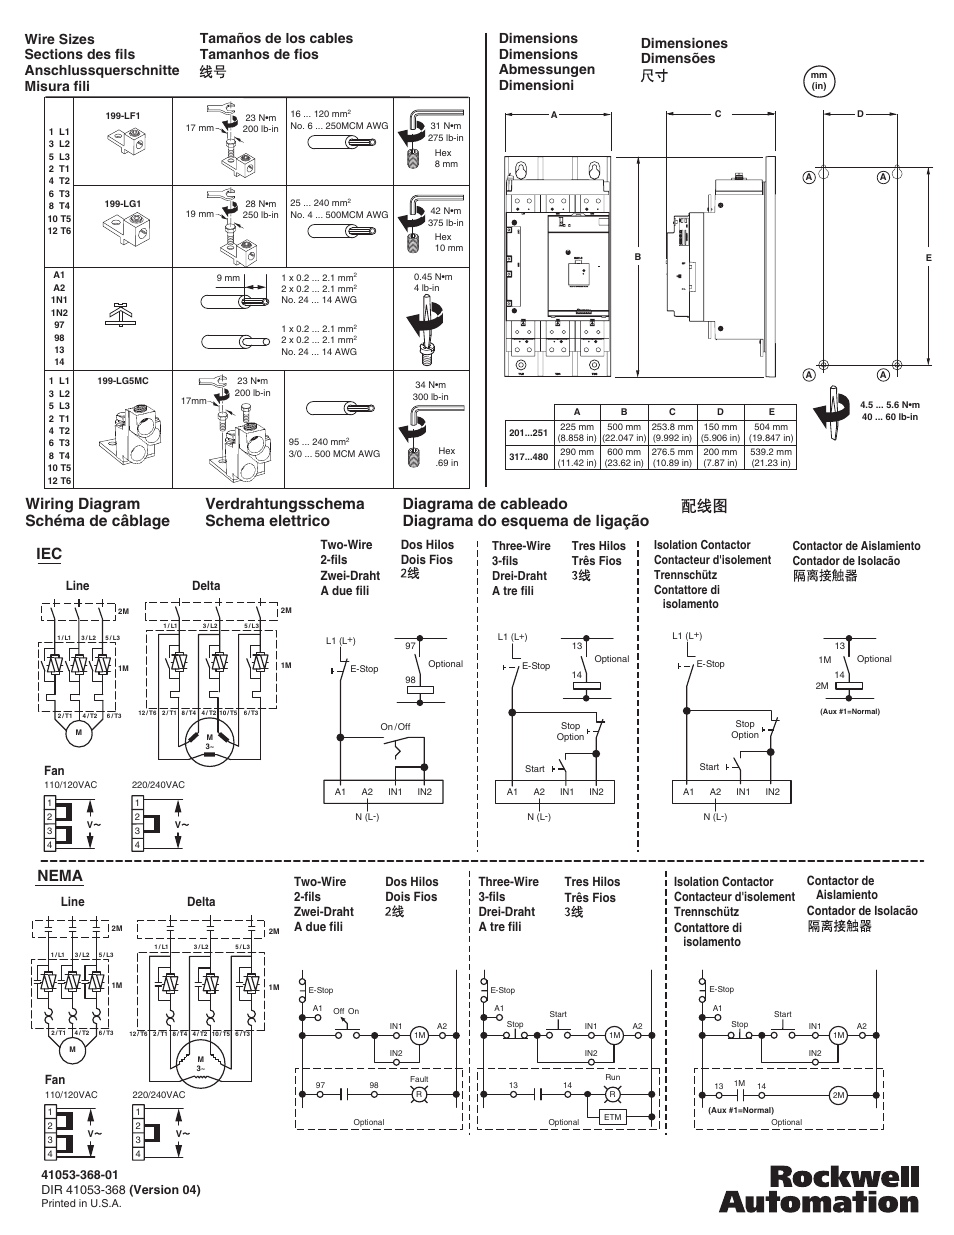 rockwell automation 150 smc 3 201a 480a soft starter 3 phase installations page4 wiring diagram sch�ma de c�blage iec, nema, verdrahtungsschema smc fan wiring diagram at bayanpartner.co